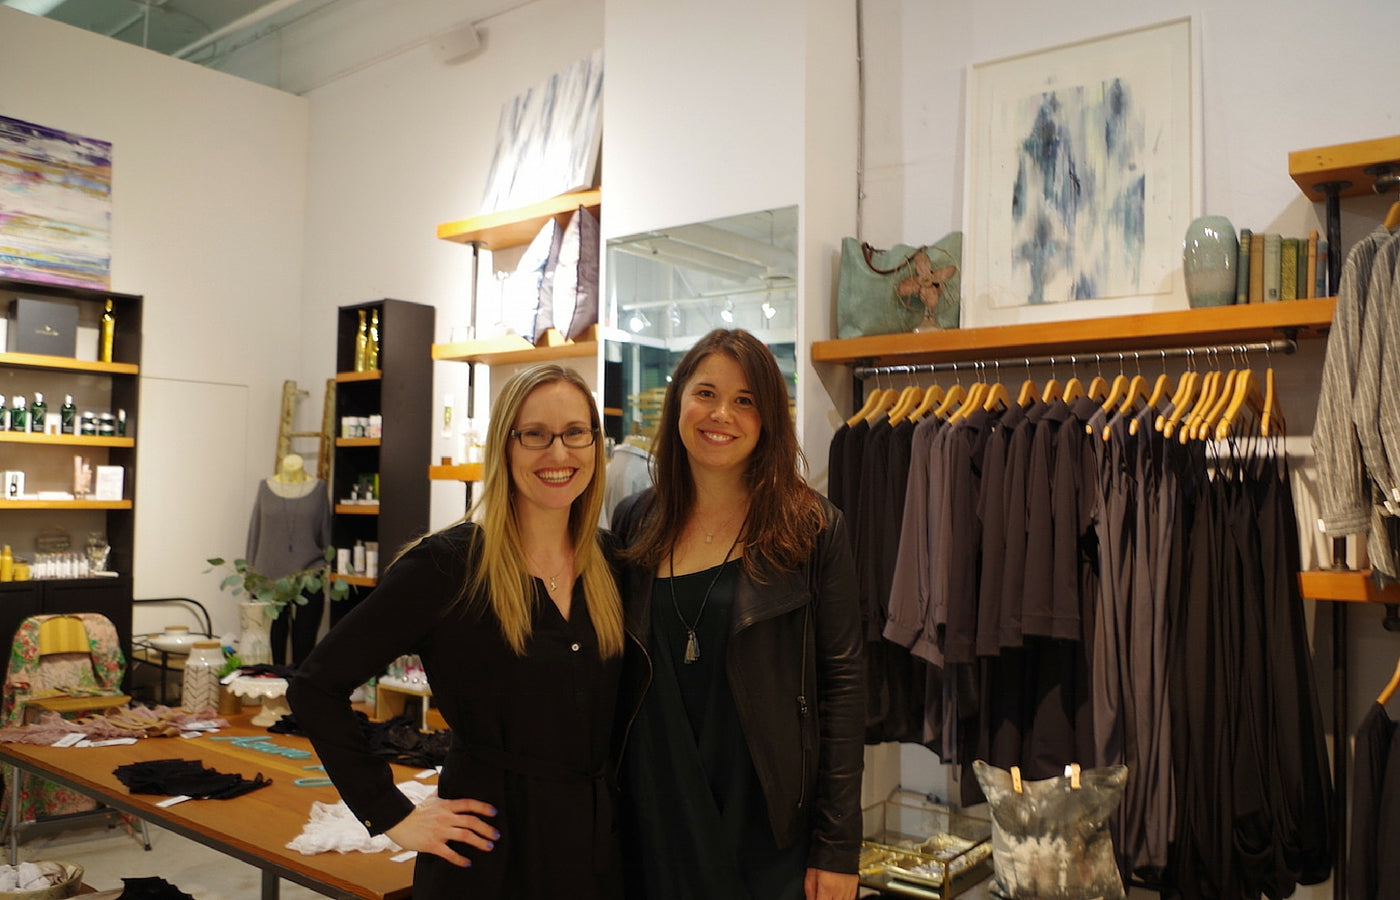 Azura Bay Founder Ashley McIntosh & Canadian Eco & Ethical Designer Nicole Bridger